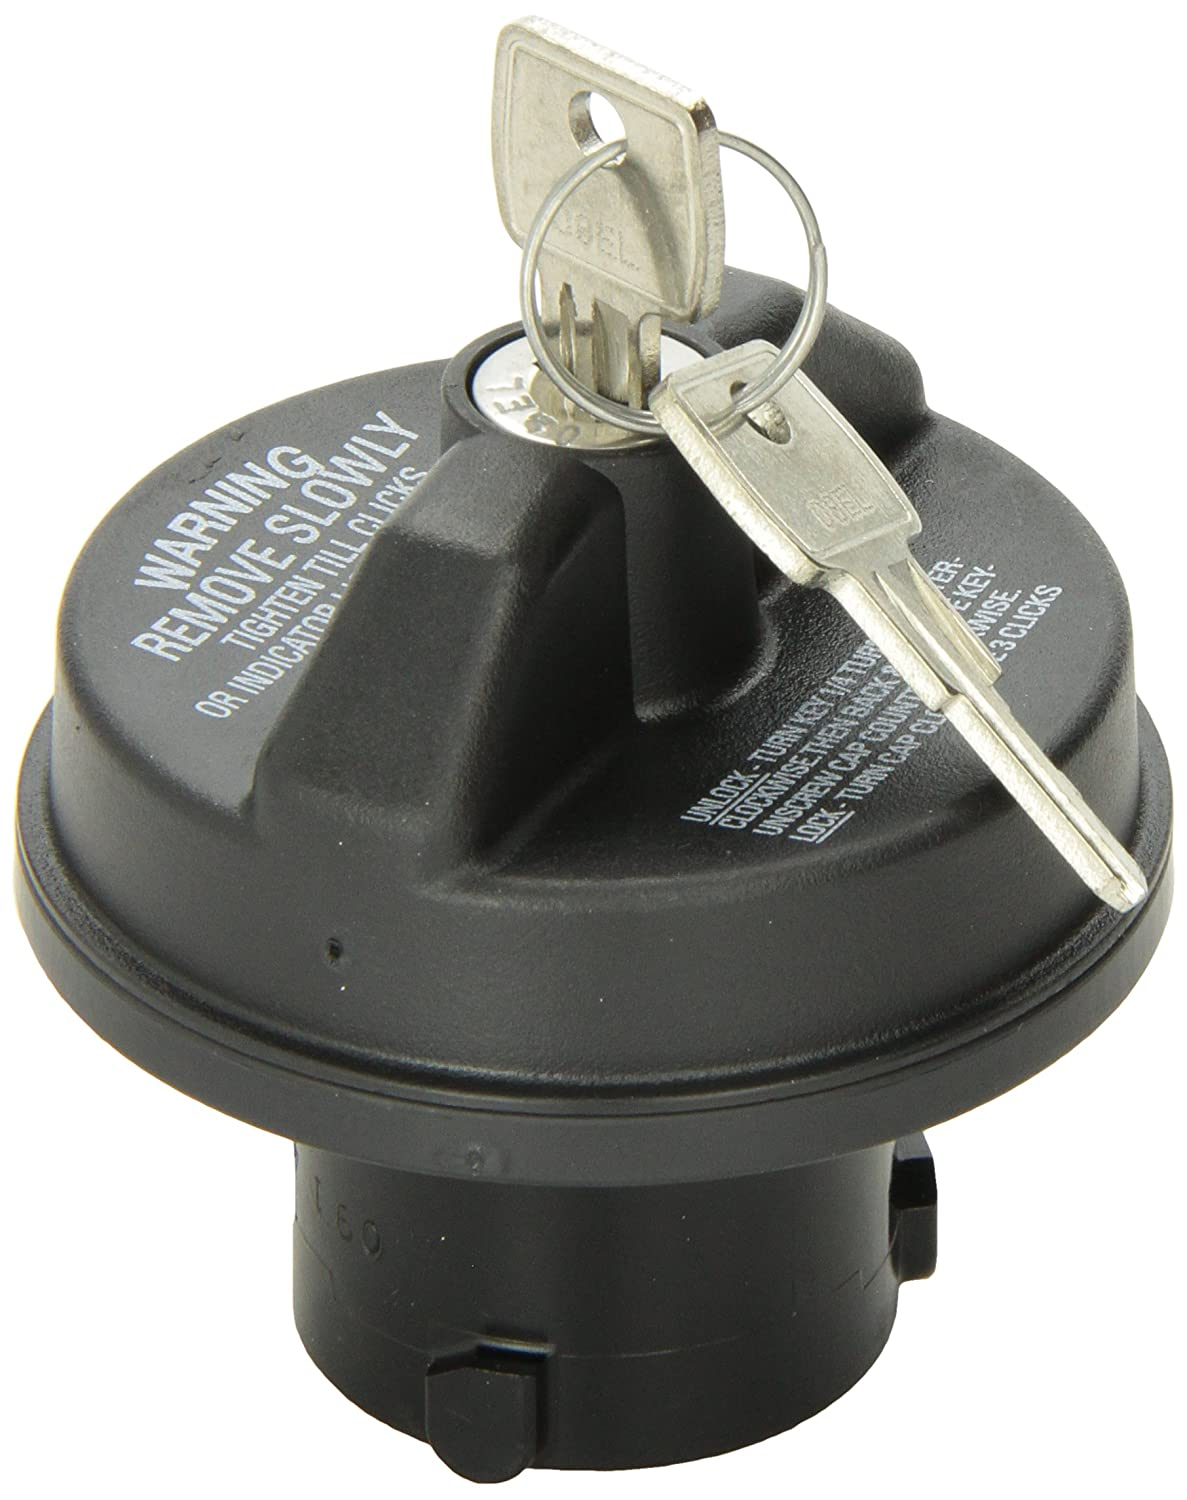 locking gas cap